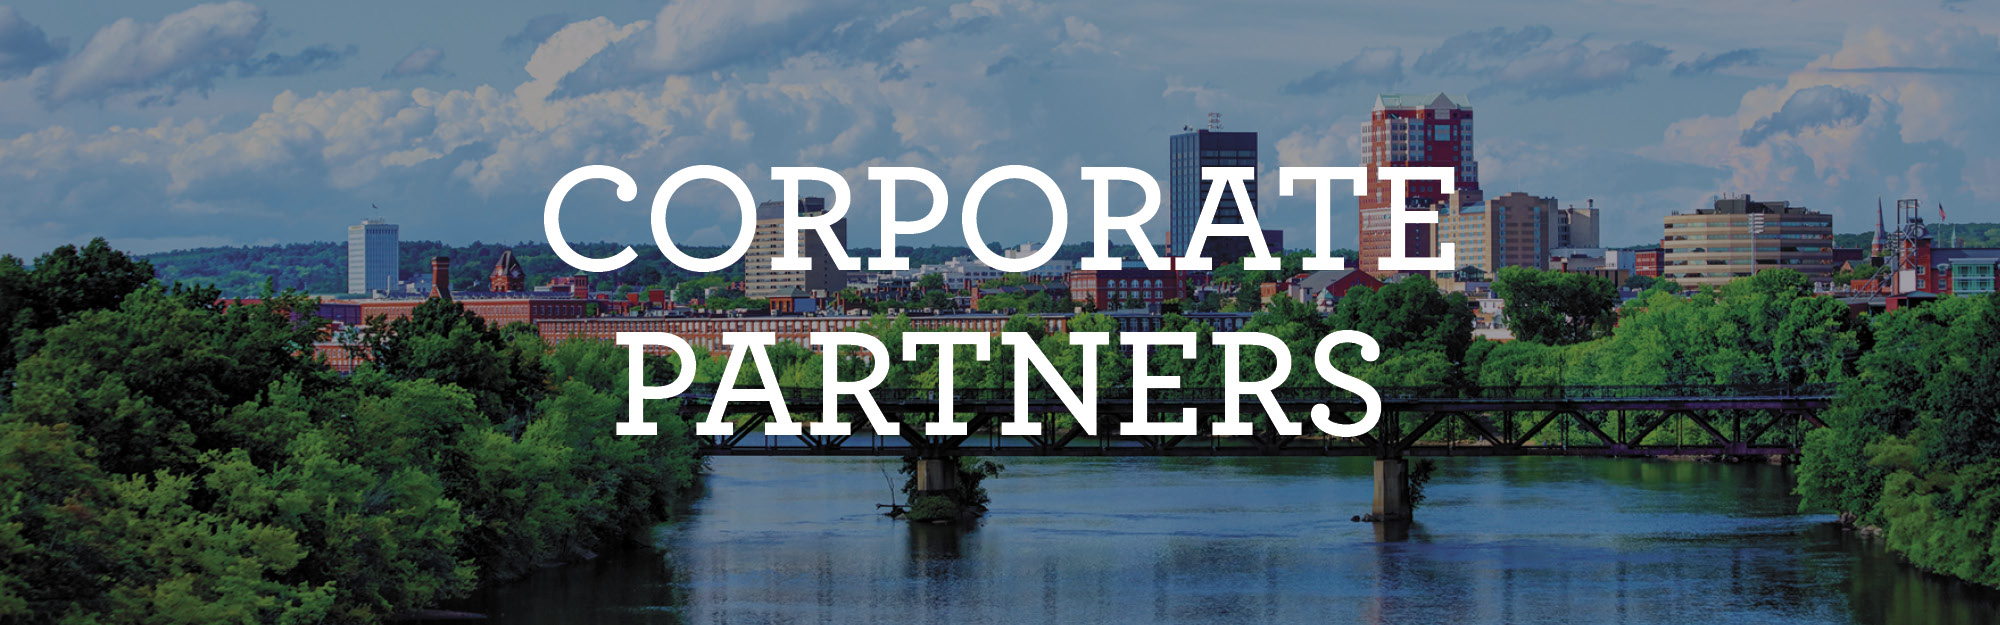 corporate partnerships information